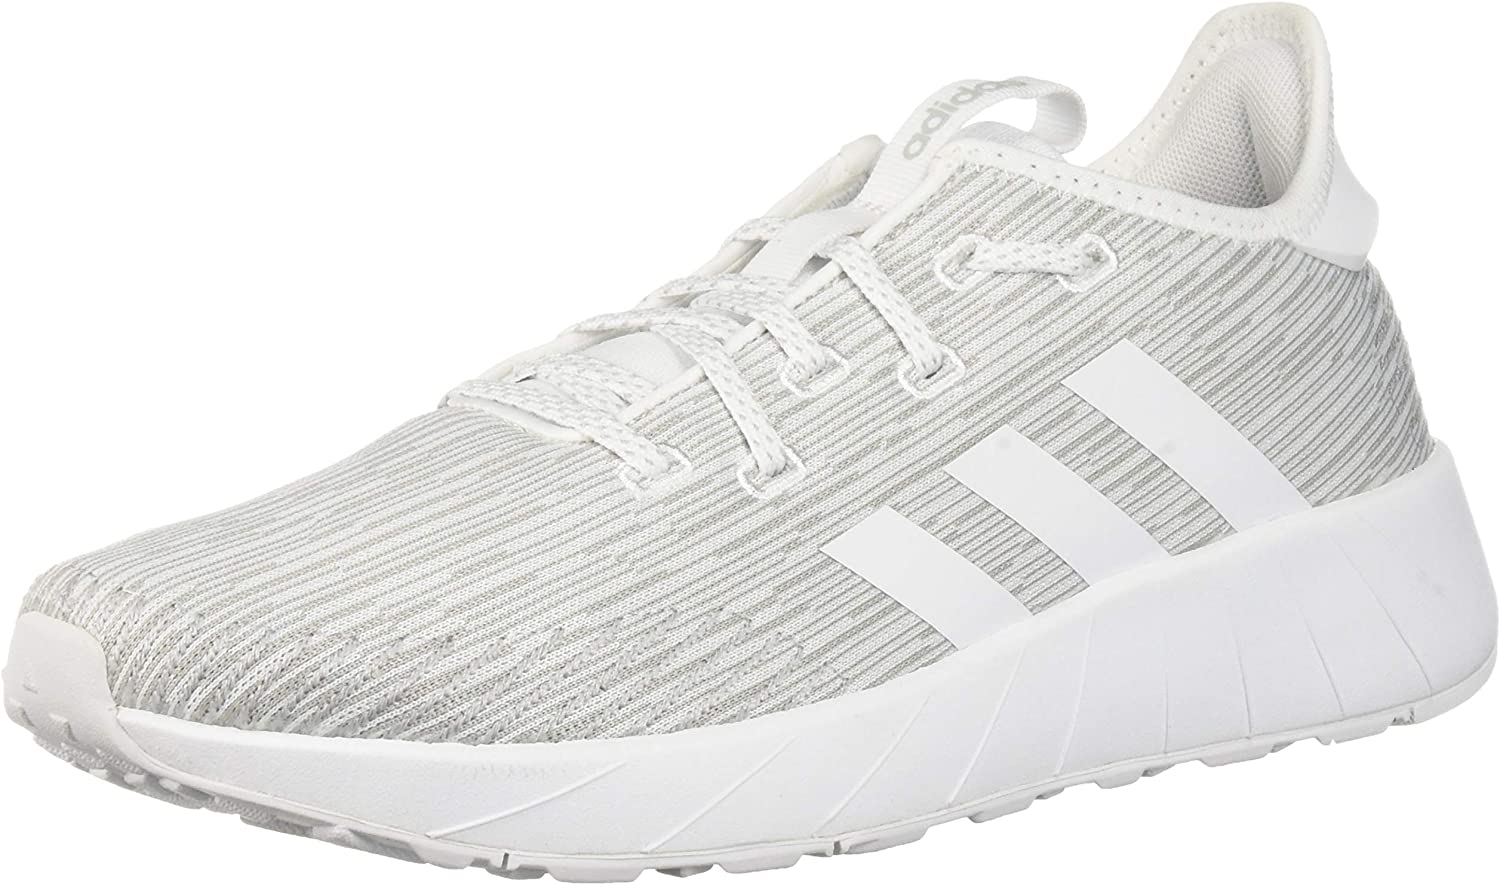 Adidas Women's Questar X BYD Sneakers